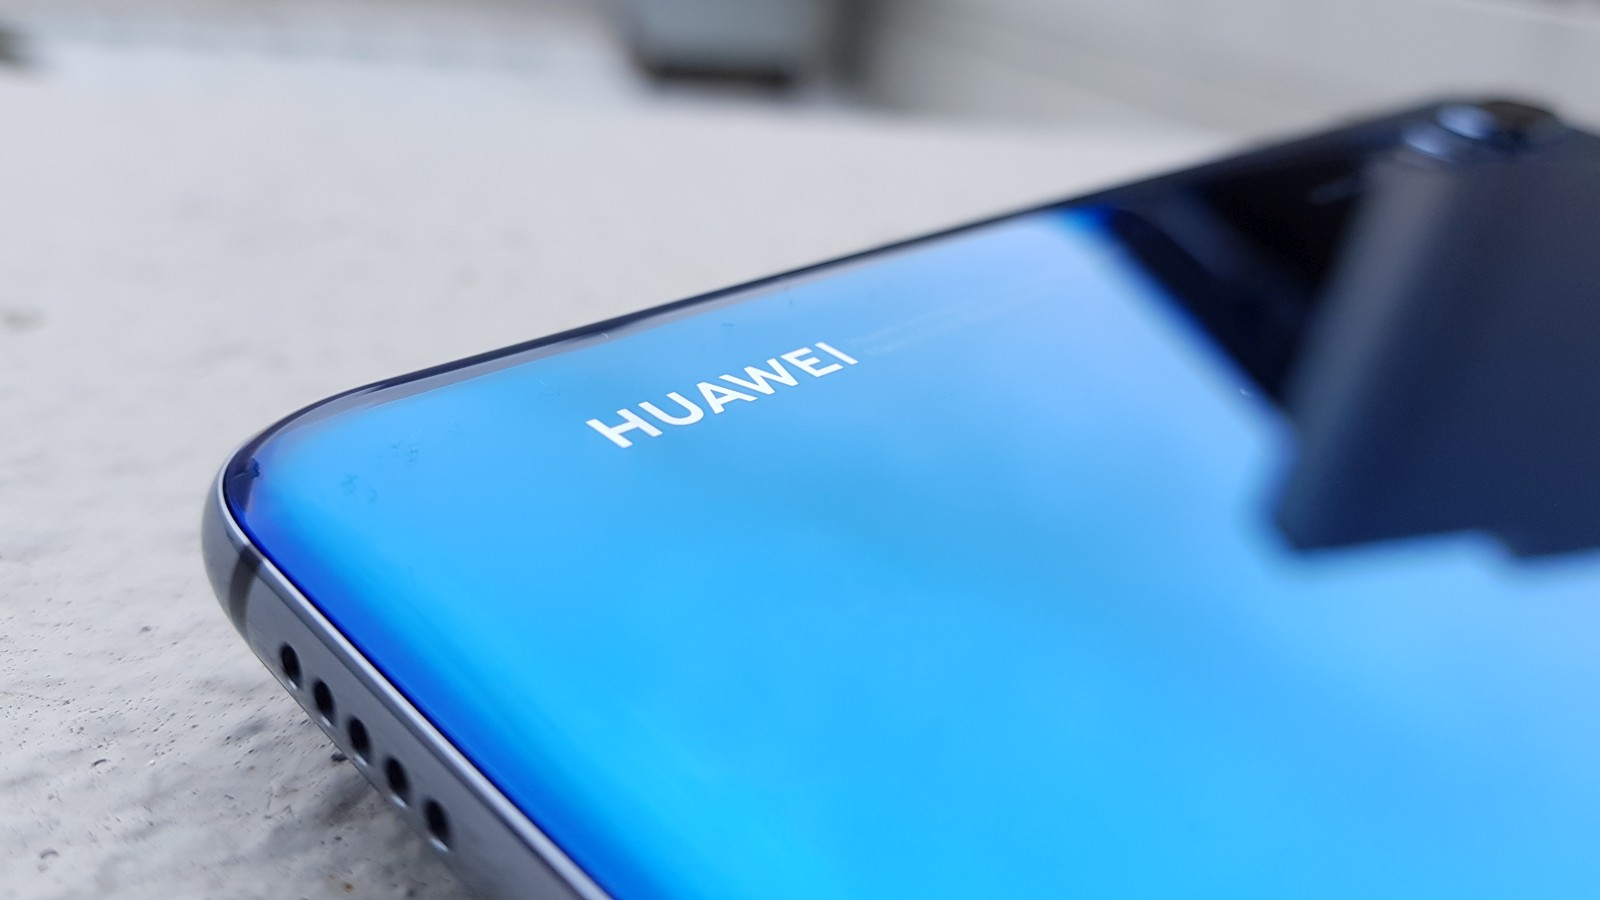 [Exclusivo] Huawei committed to Chilean operators to upgrade some devices to Android 10 1